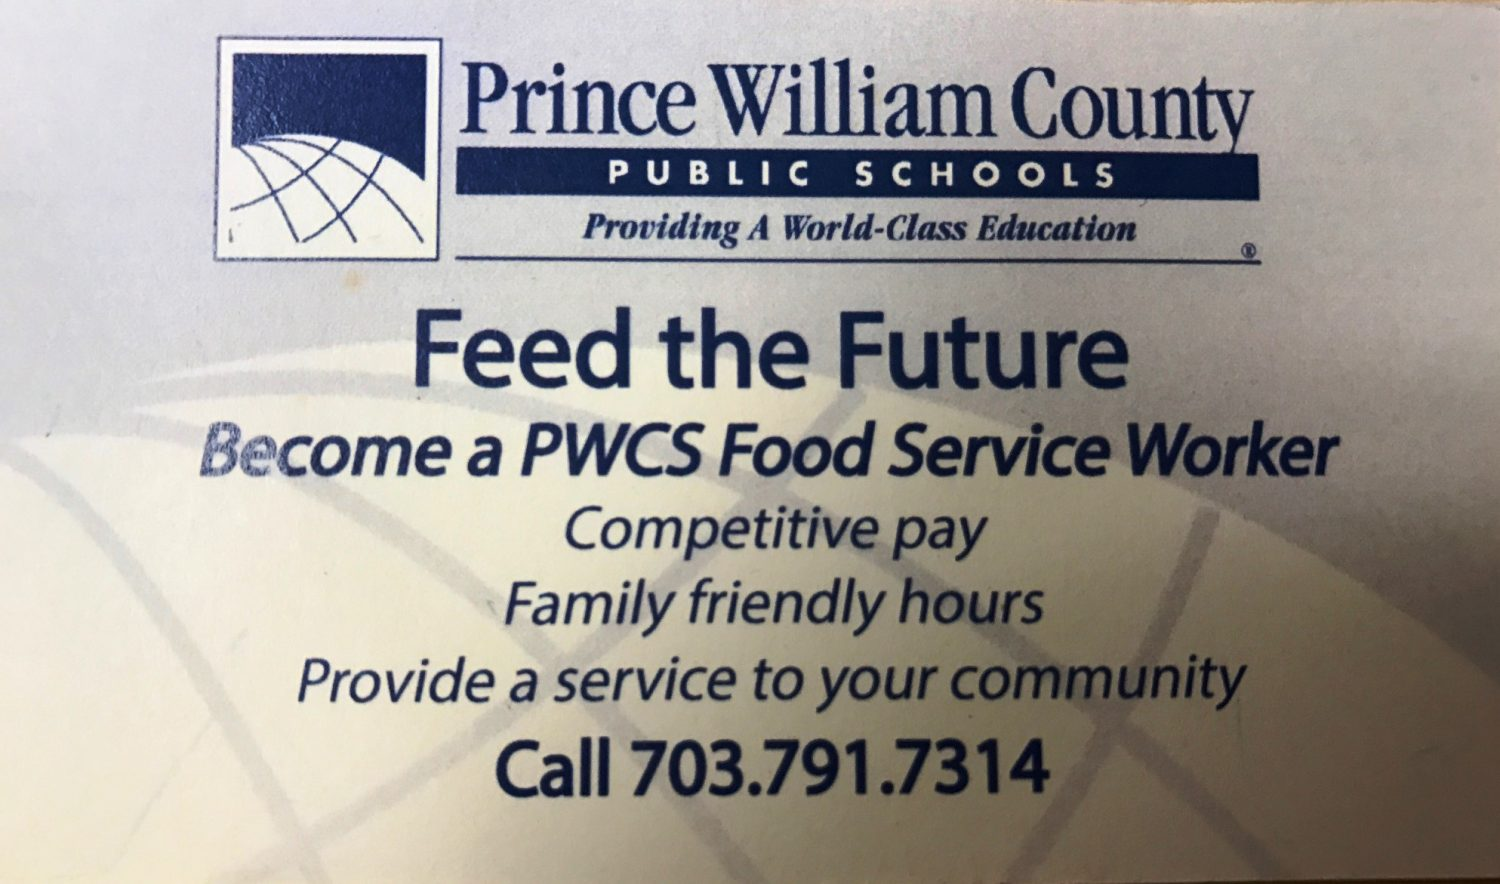 FEED+the+Future%3A+Become+a+PWCS+Food+Service+Worker